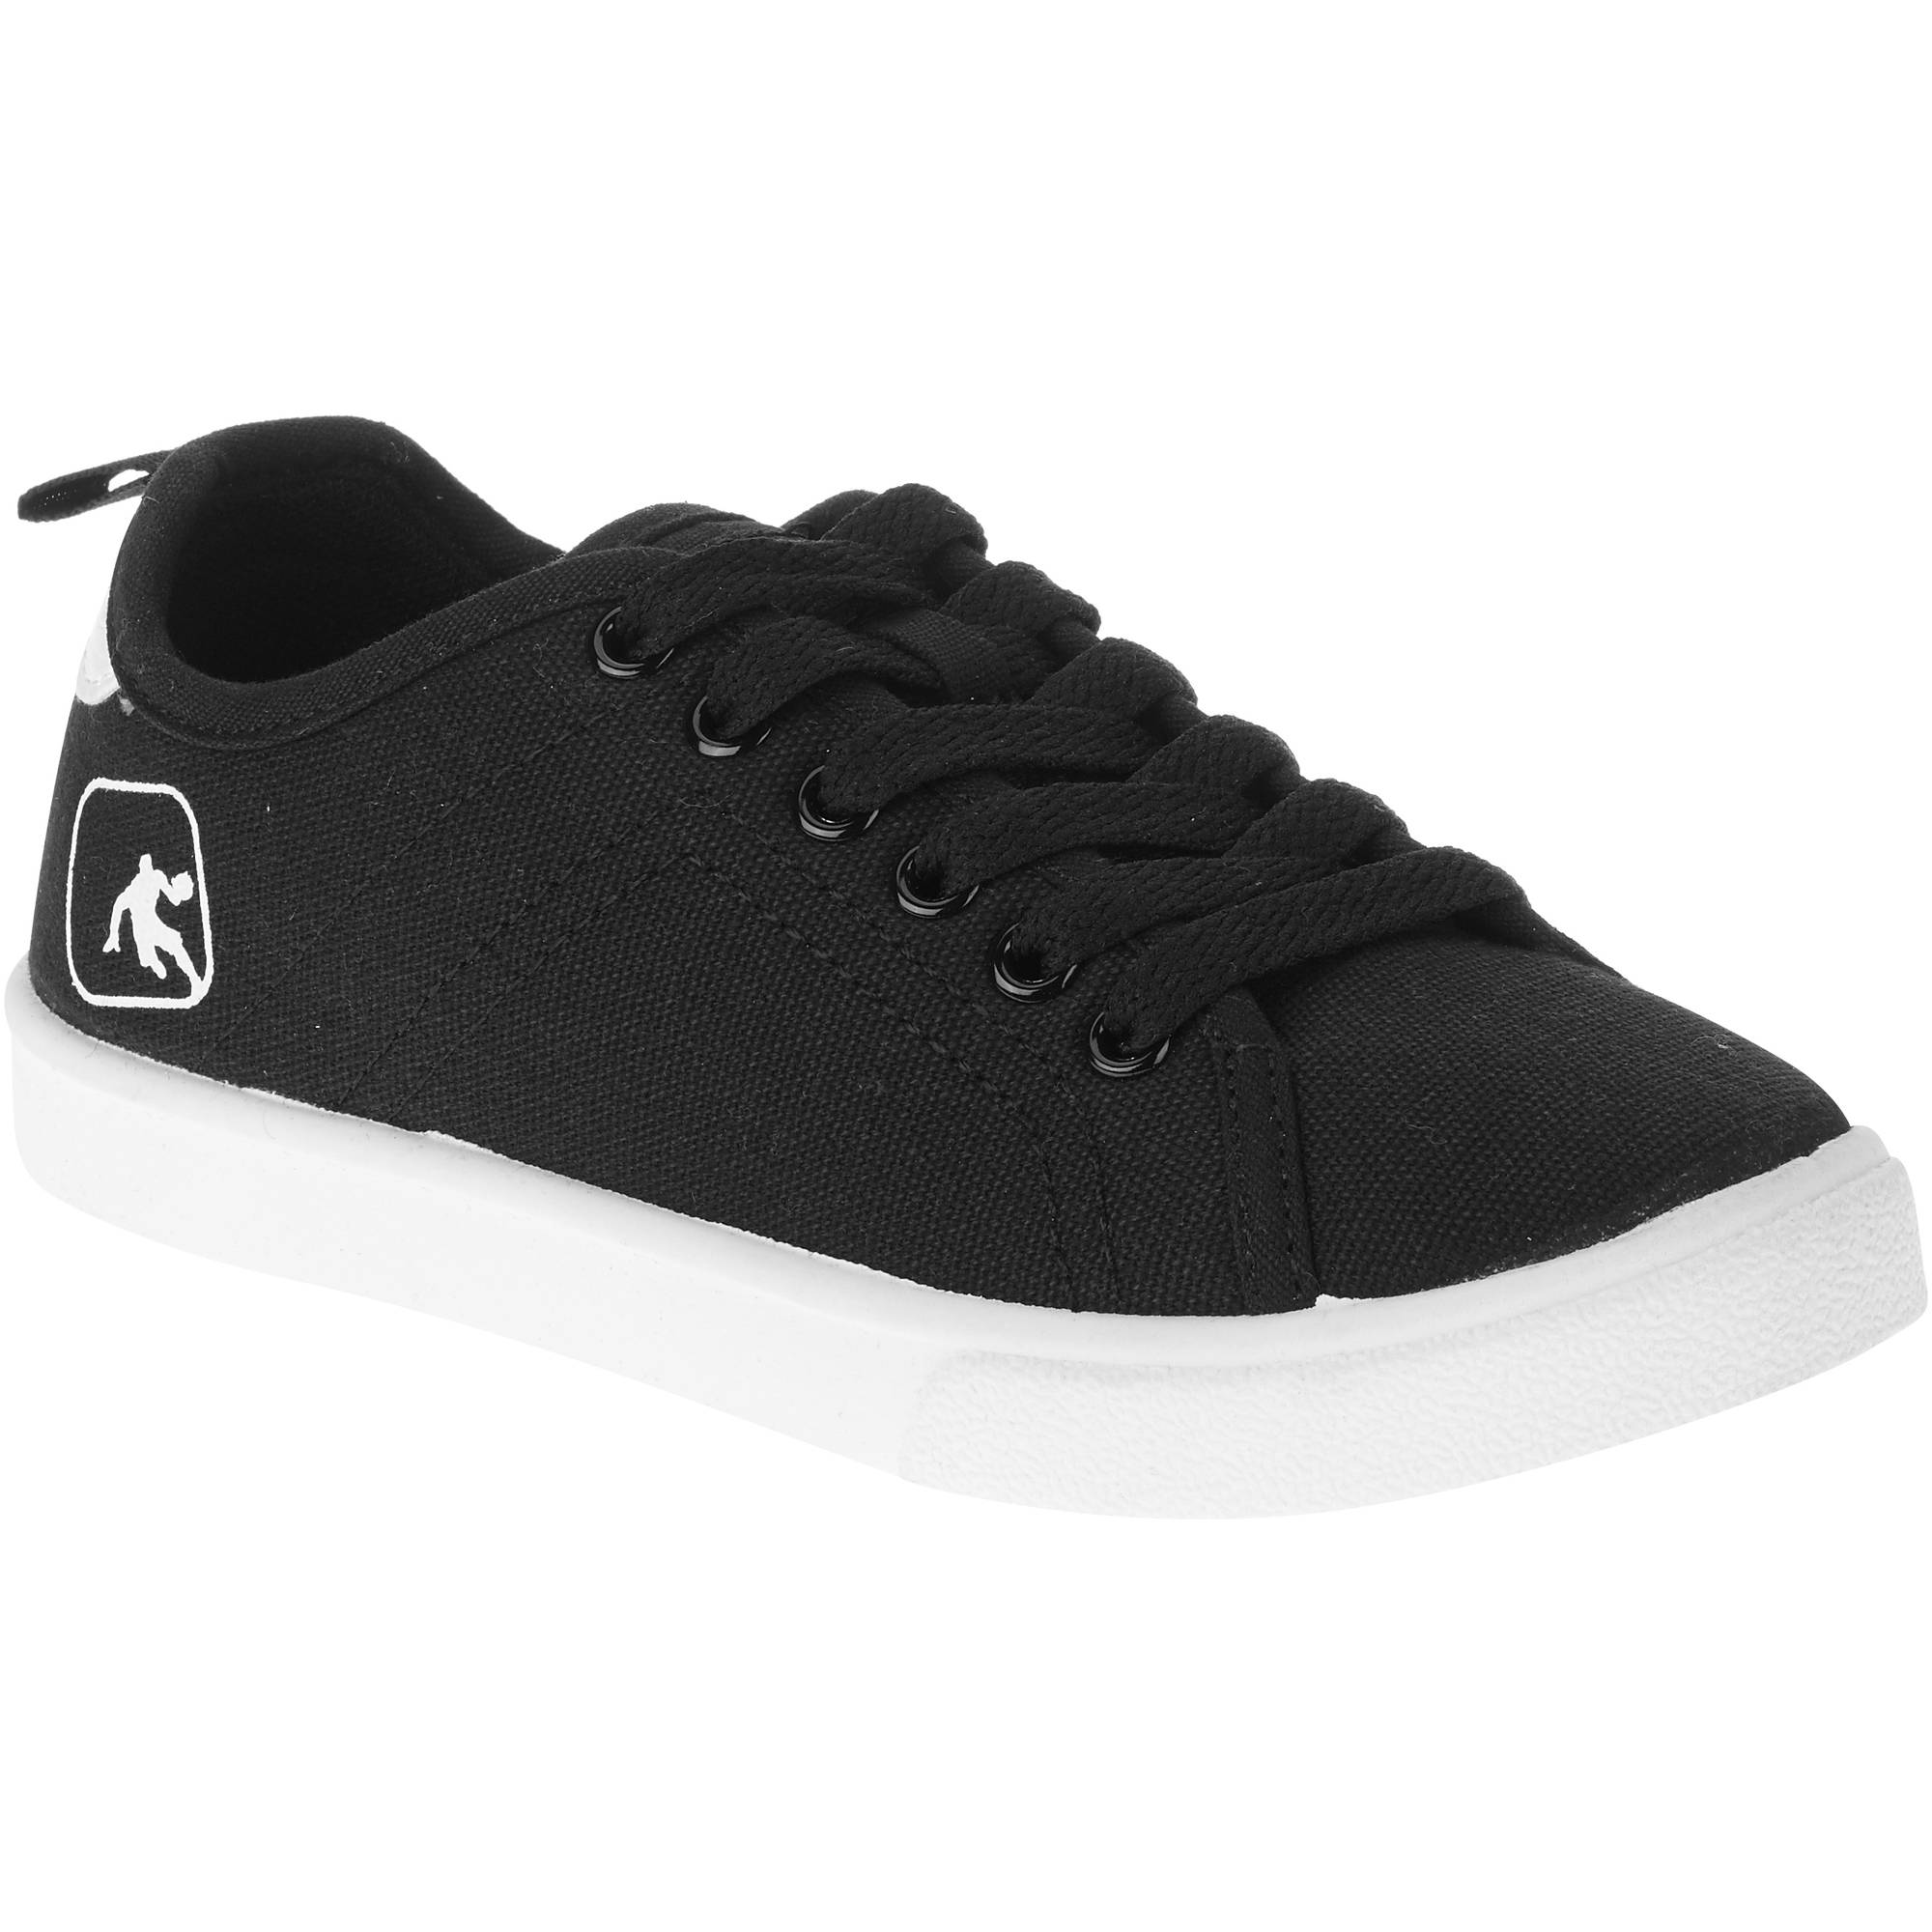 AND1 Boys' Canvas Lace-up Sneaker